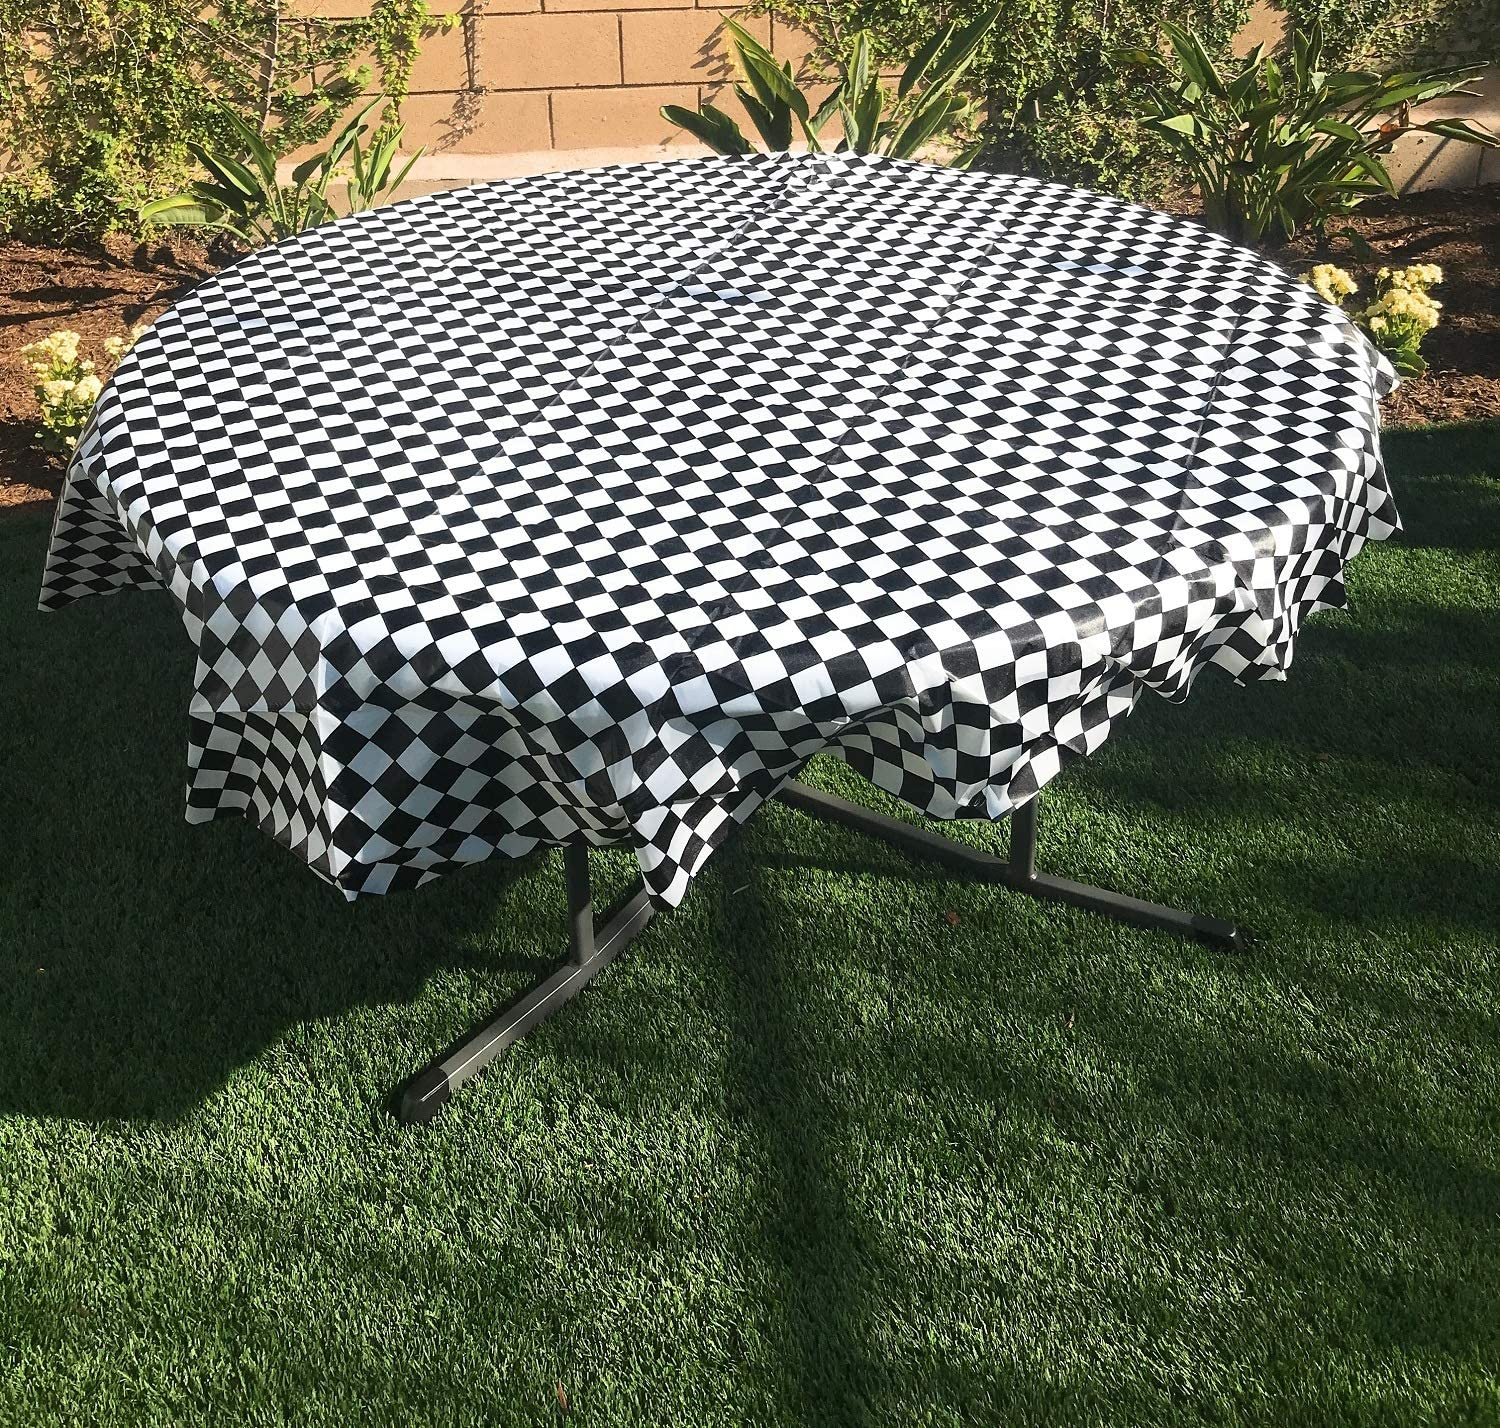 """Oojami Pack of 4, Black & White Checkered Flag Table Cover Party Favor/Checkered Tablecloth/Disposable Checkered Racing Table Cover (78"""" Round)"""